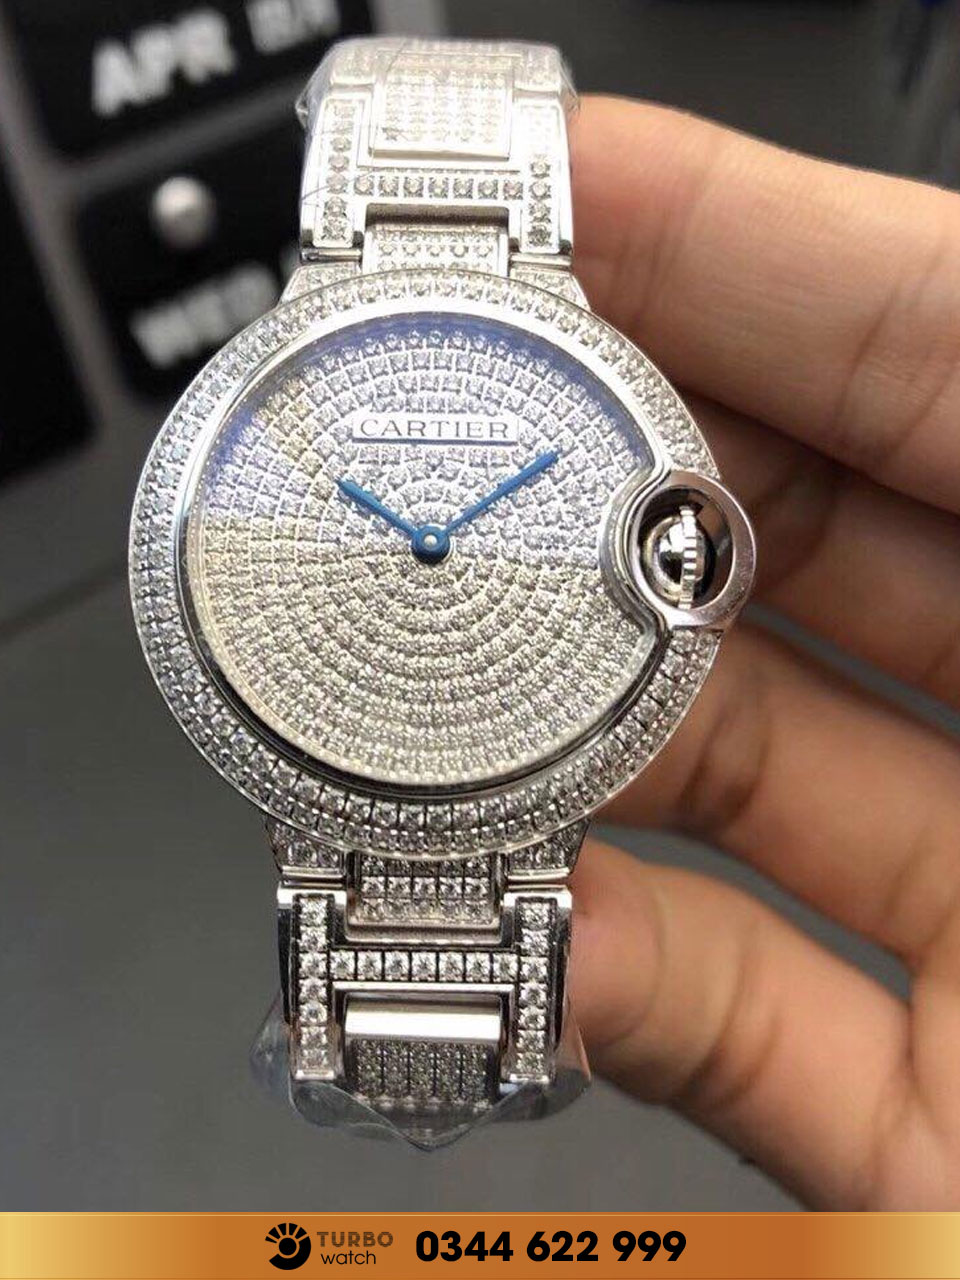 CATIER BALLON BLEU DE WHITE DIAMONDS replica 1:1 cao cấp